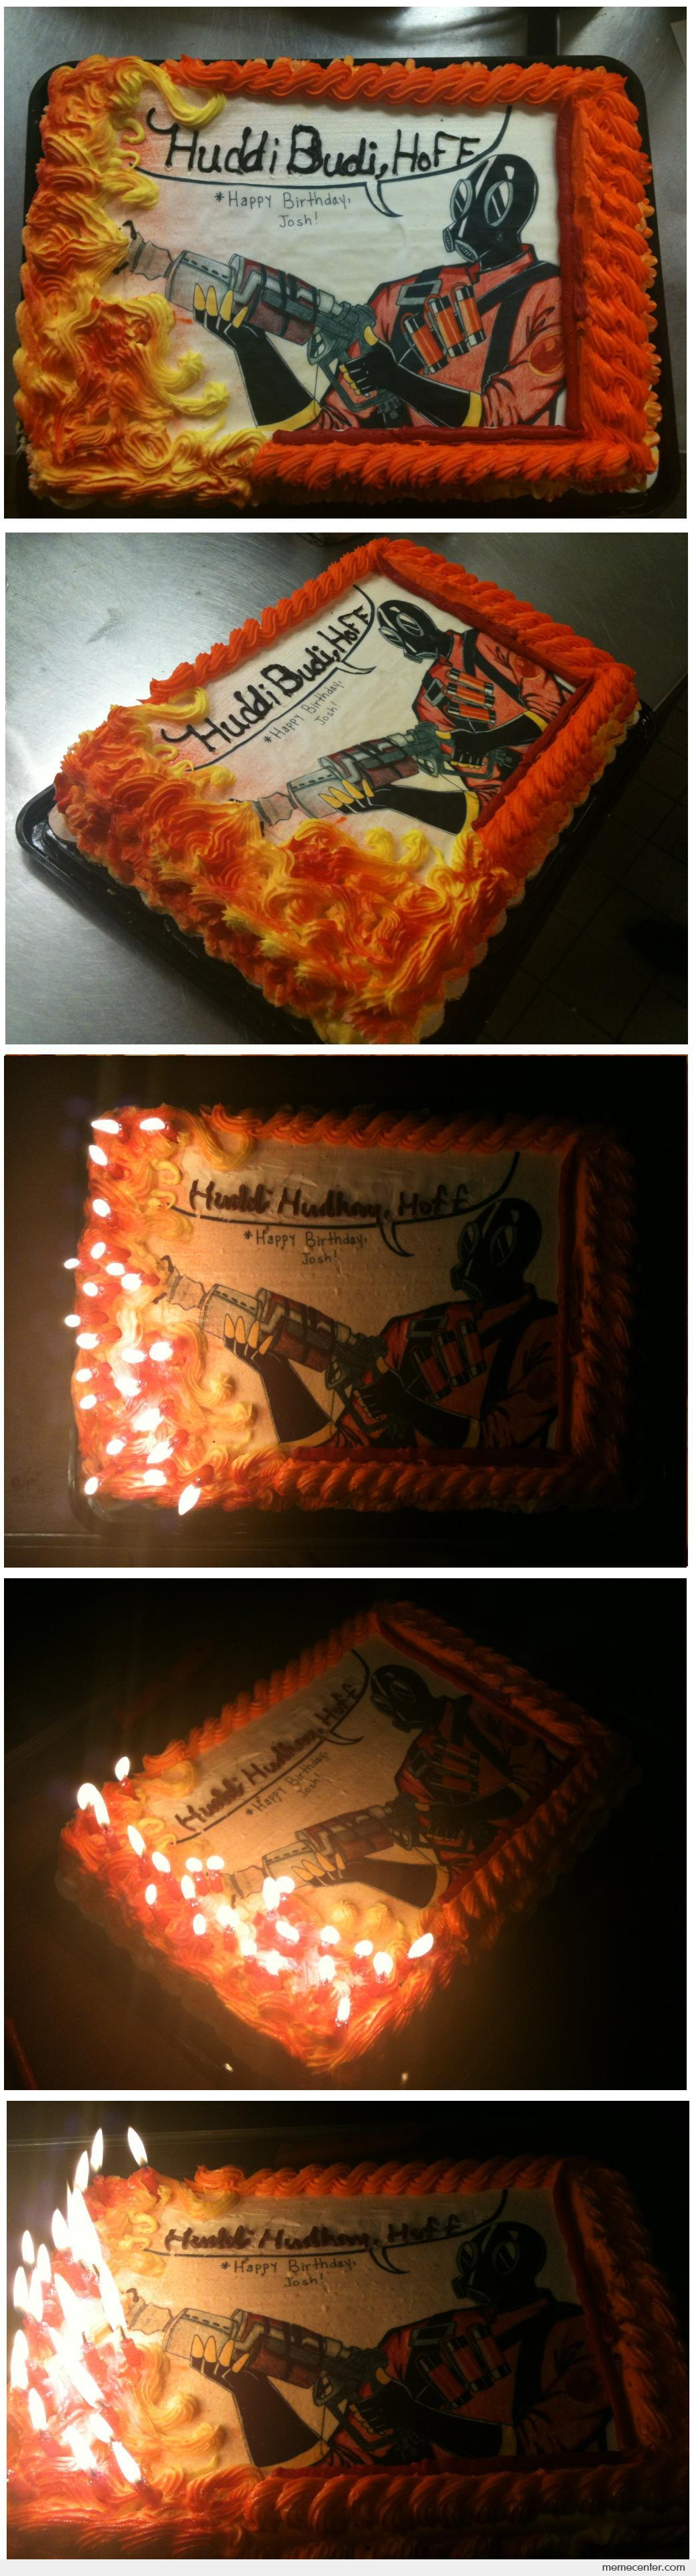 Awesome TF2 Cake